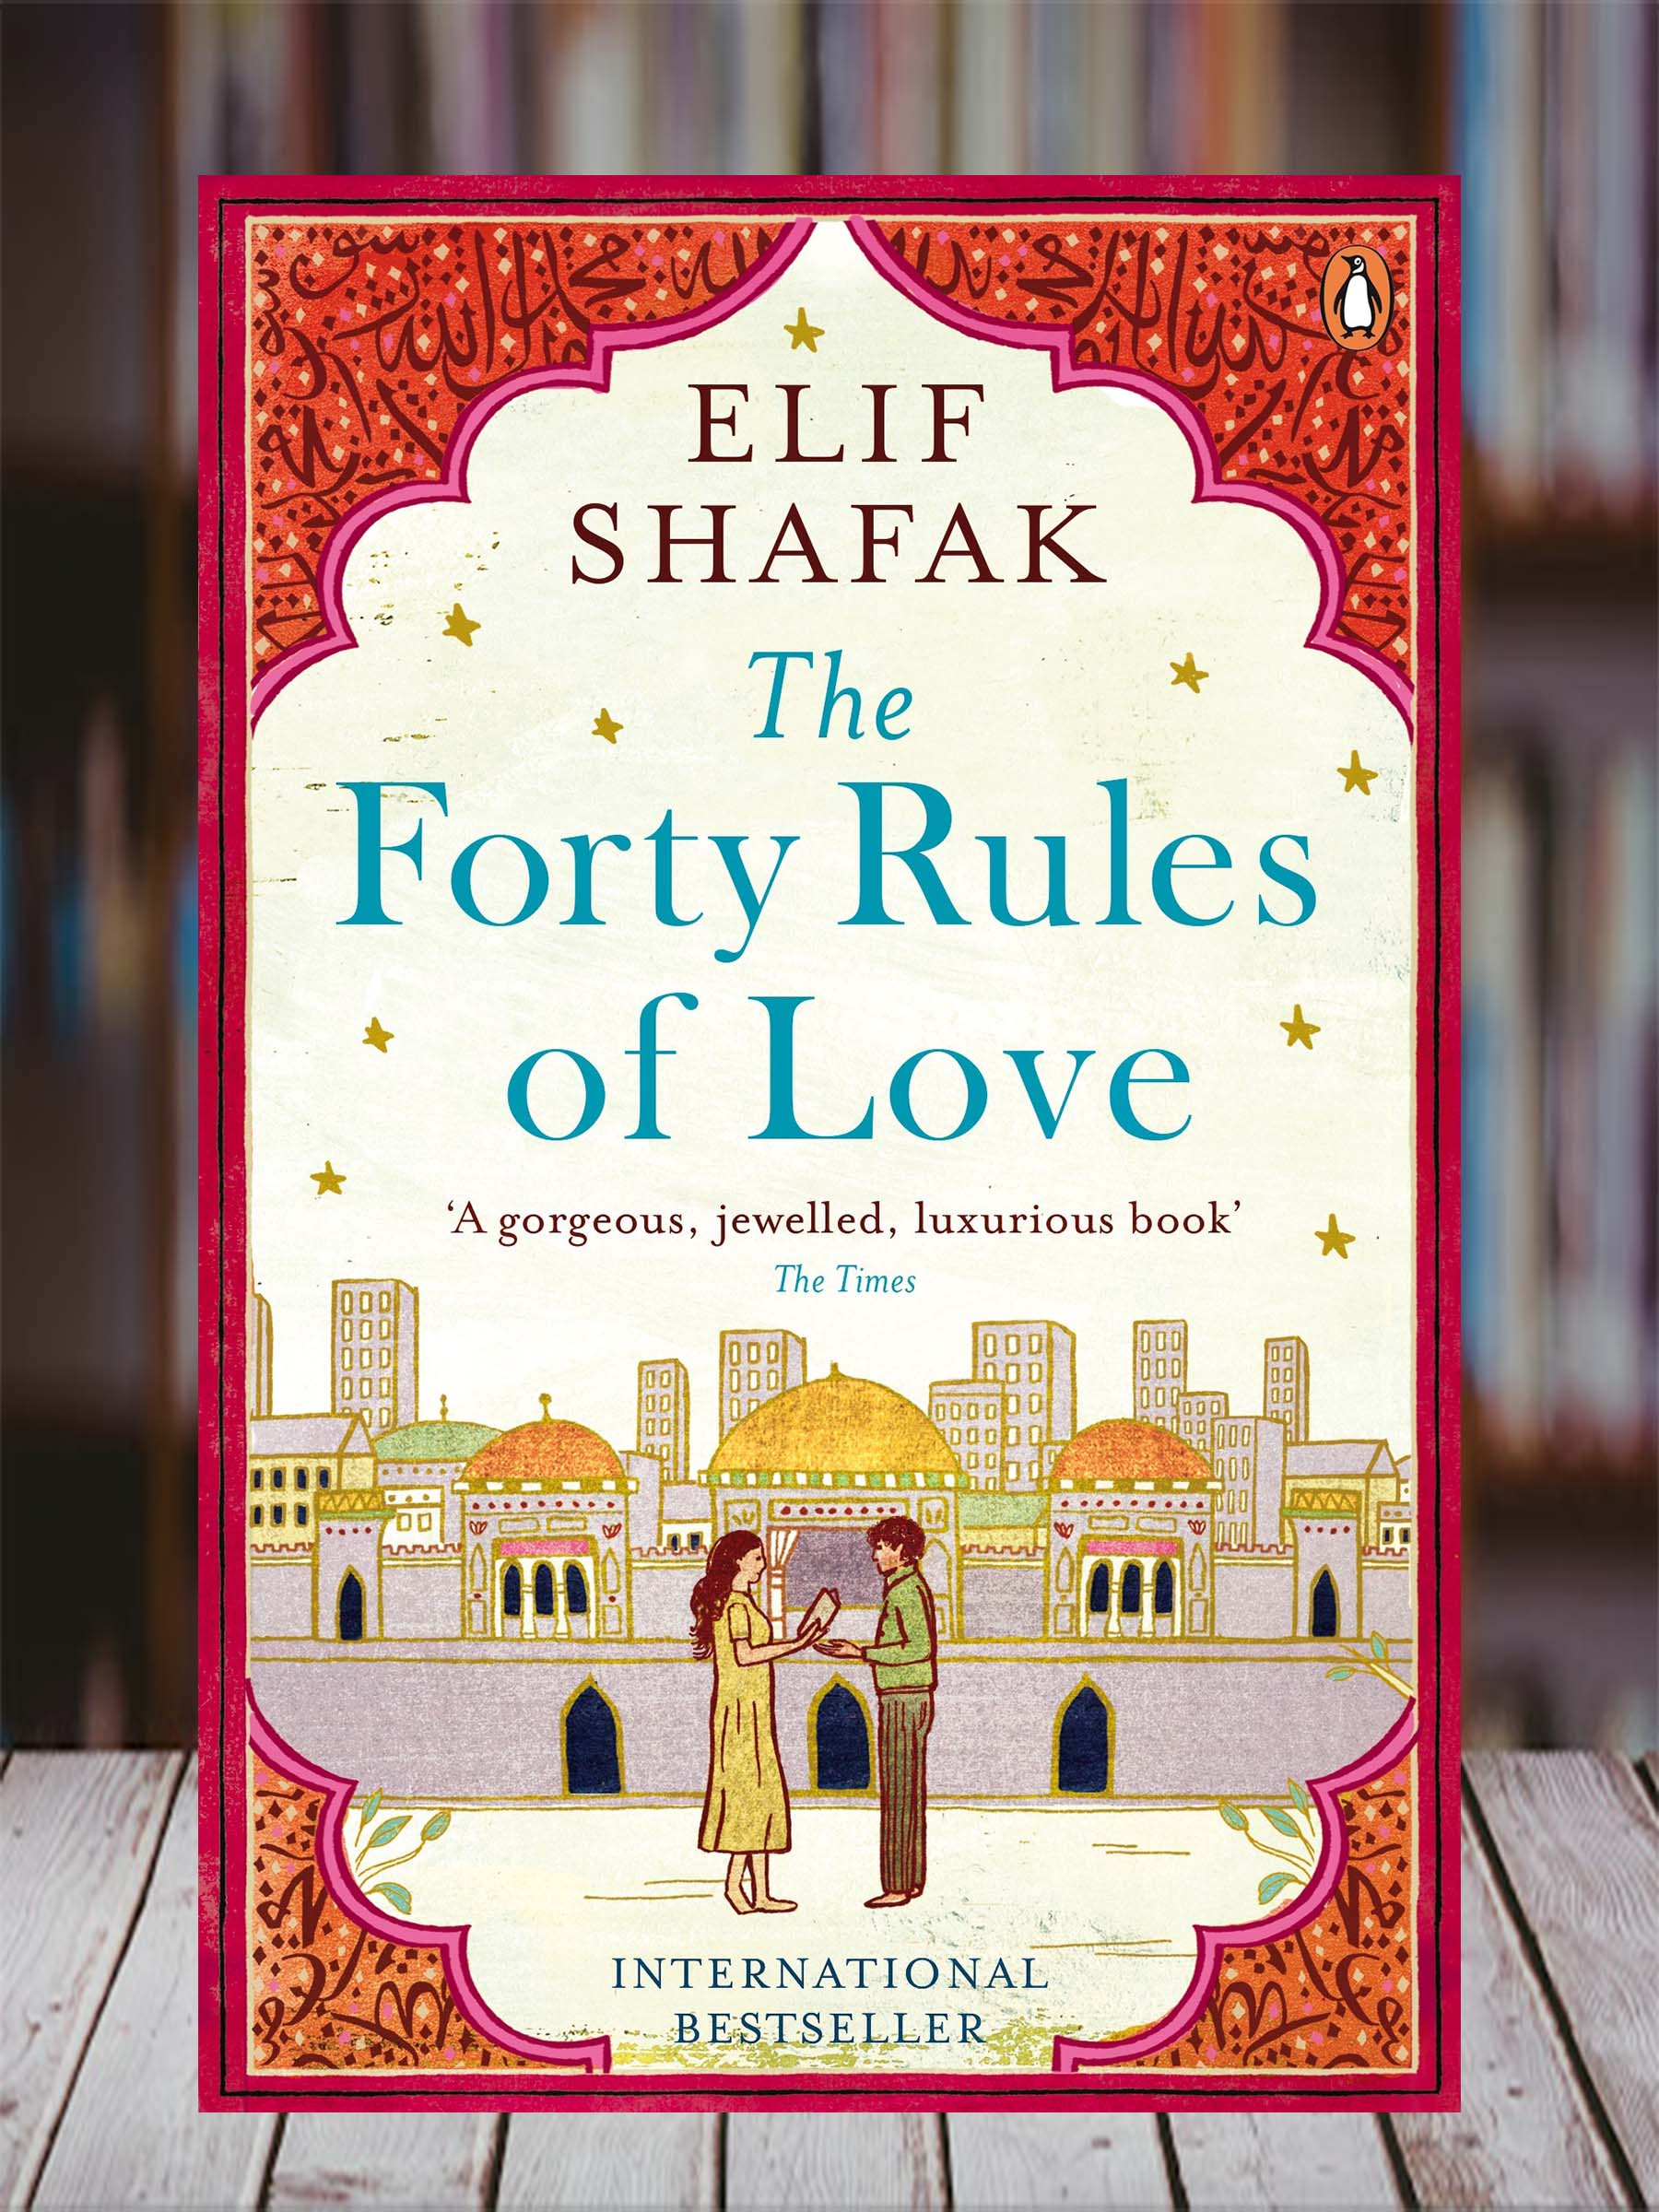 The Forty Rules of Love